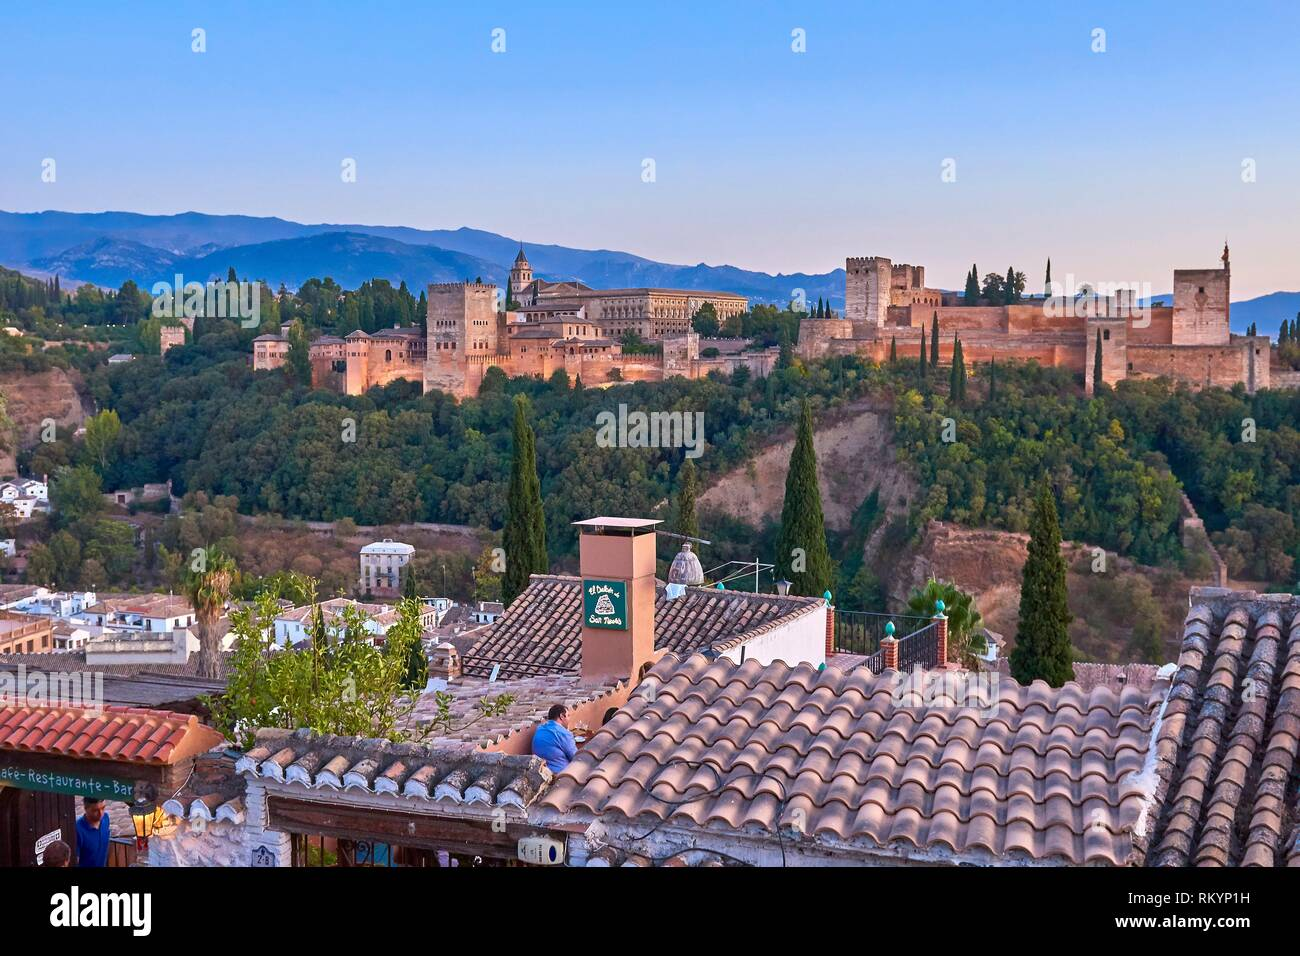 Alhambra, UNESCO World Heritage Site, Albaicin, Sierra Nevada and la Alhambra at Sunset, Granada, Andalusia, Spain. - Stock Image